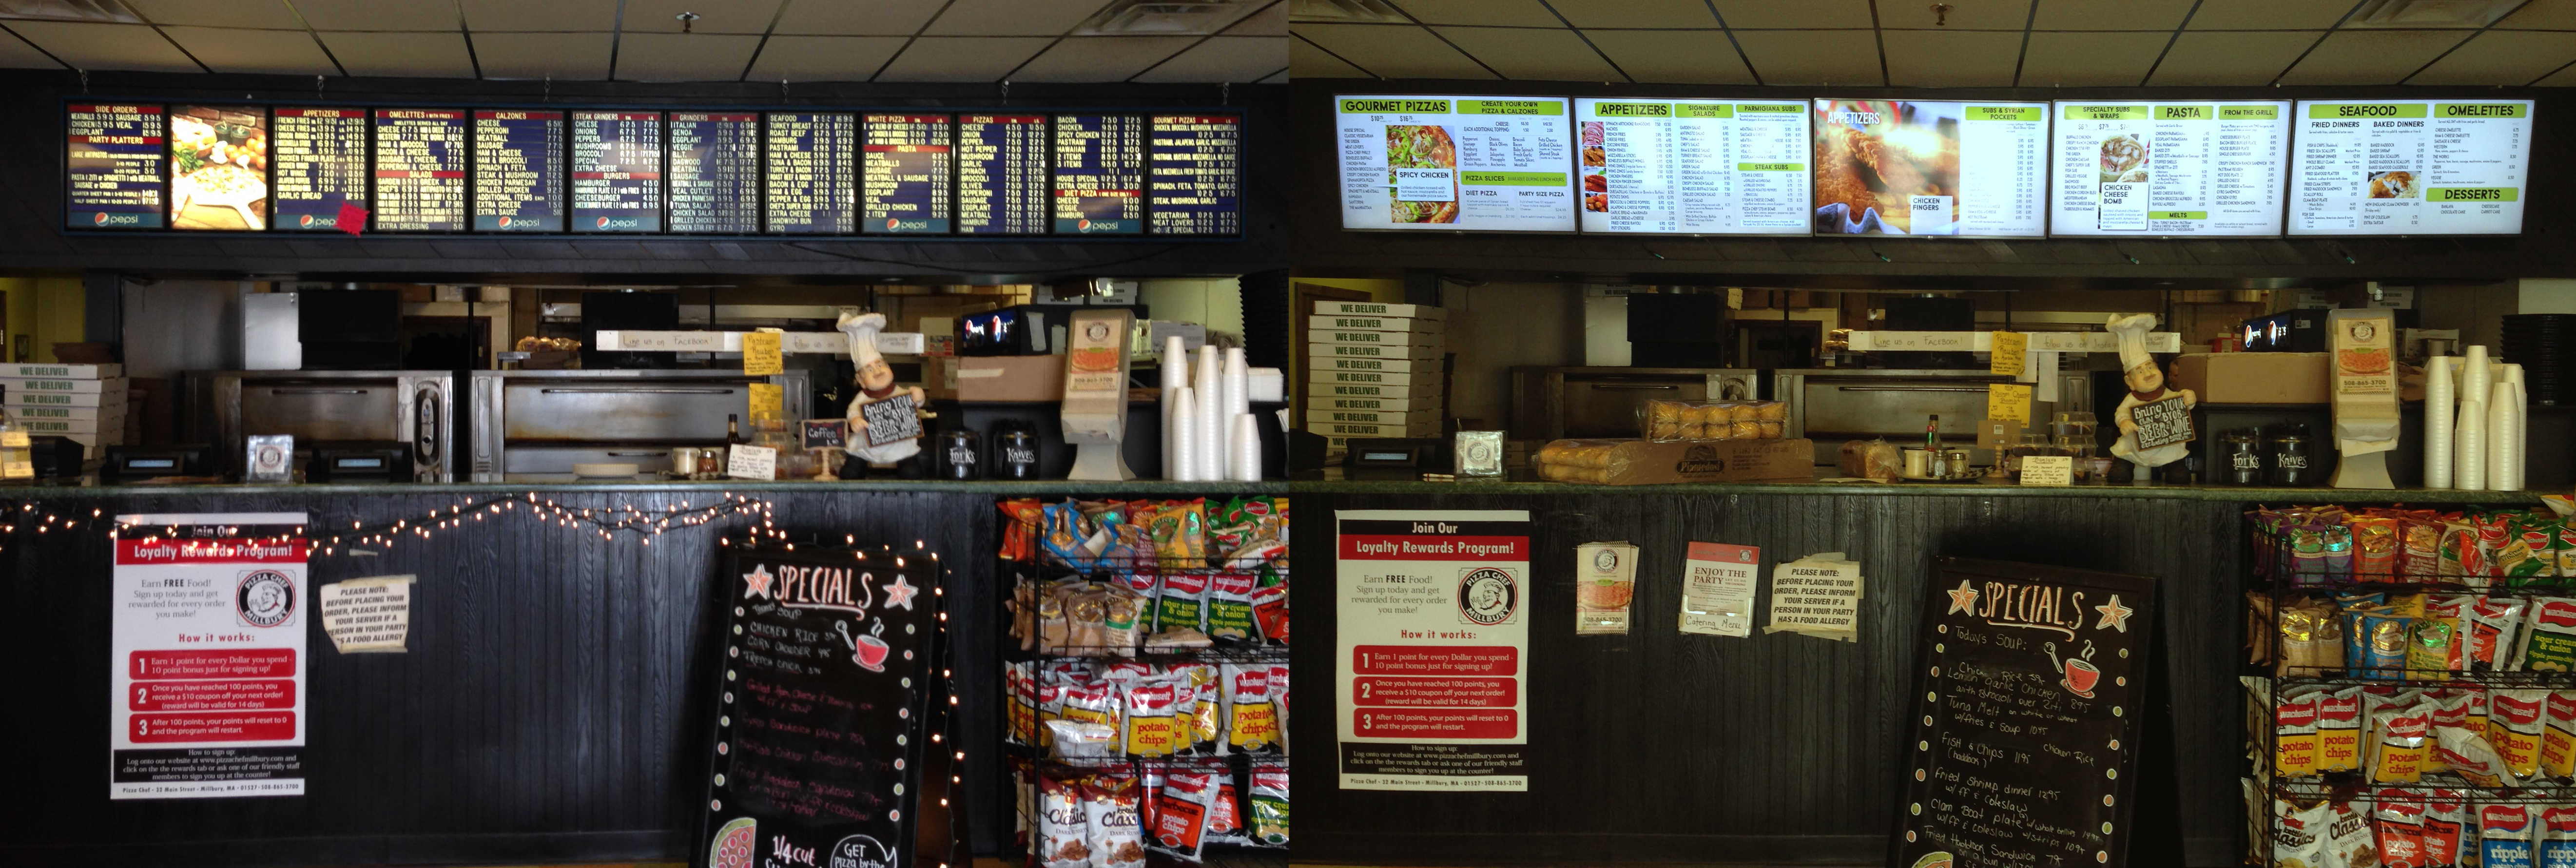 Comparison of original and Digital Menu Boards.